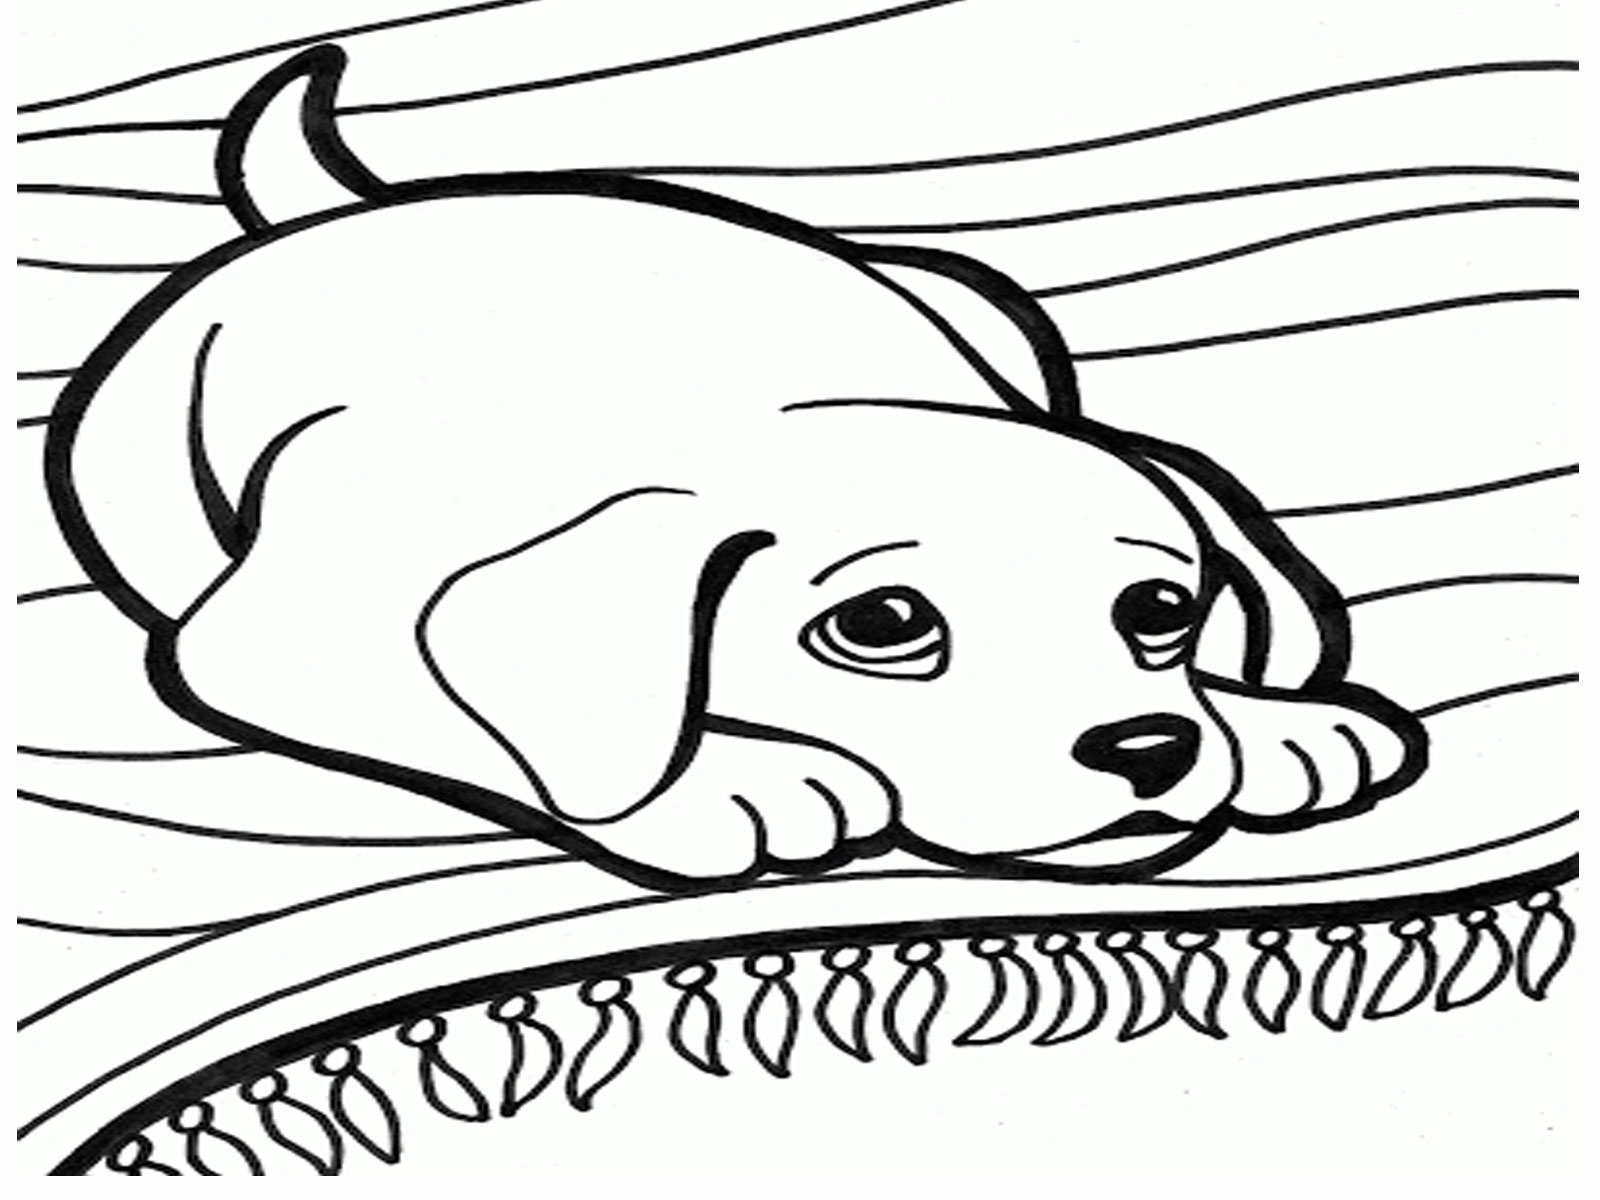 Dog Cat Drawing at GetDrawings.com | Free for personal use Dog Cat ...